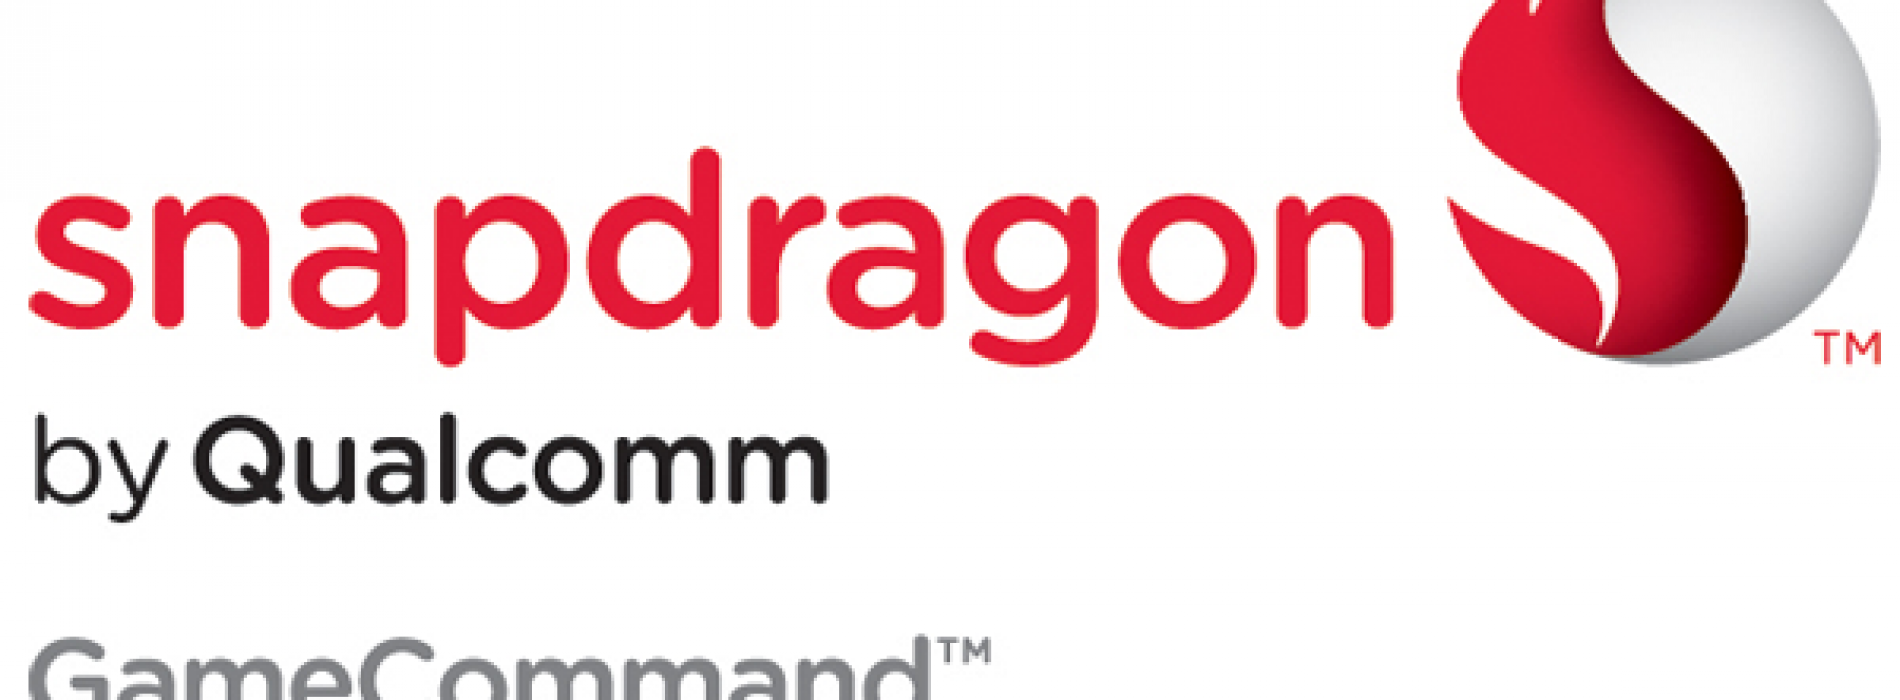 Qualcomm's GameCommand ready for Android Market debut